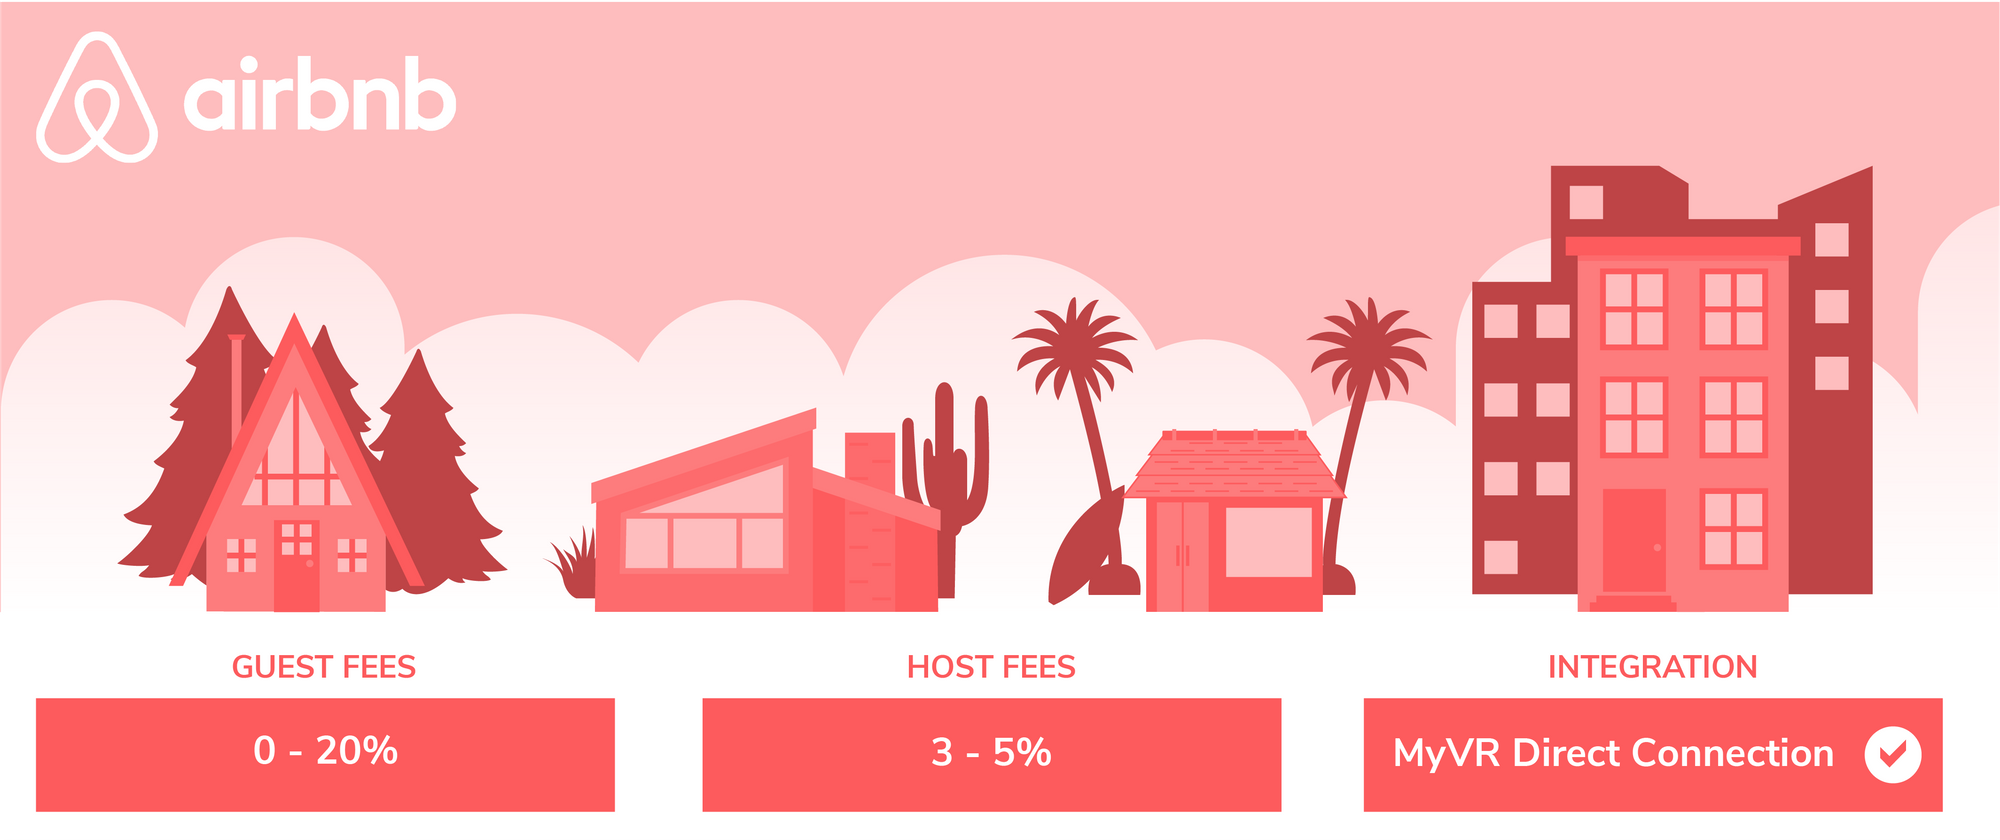 Airbnb Host Fees, Guest Fees - MyVR